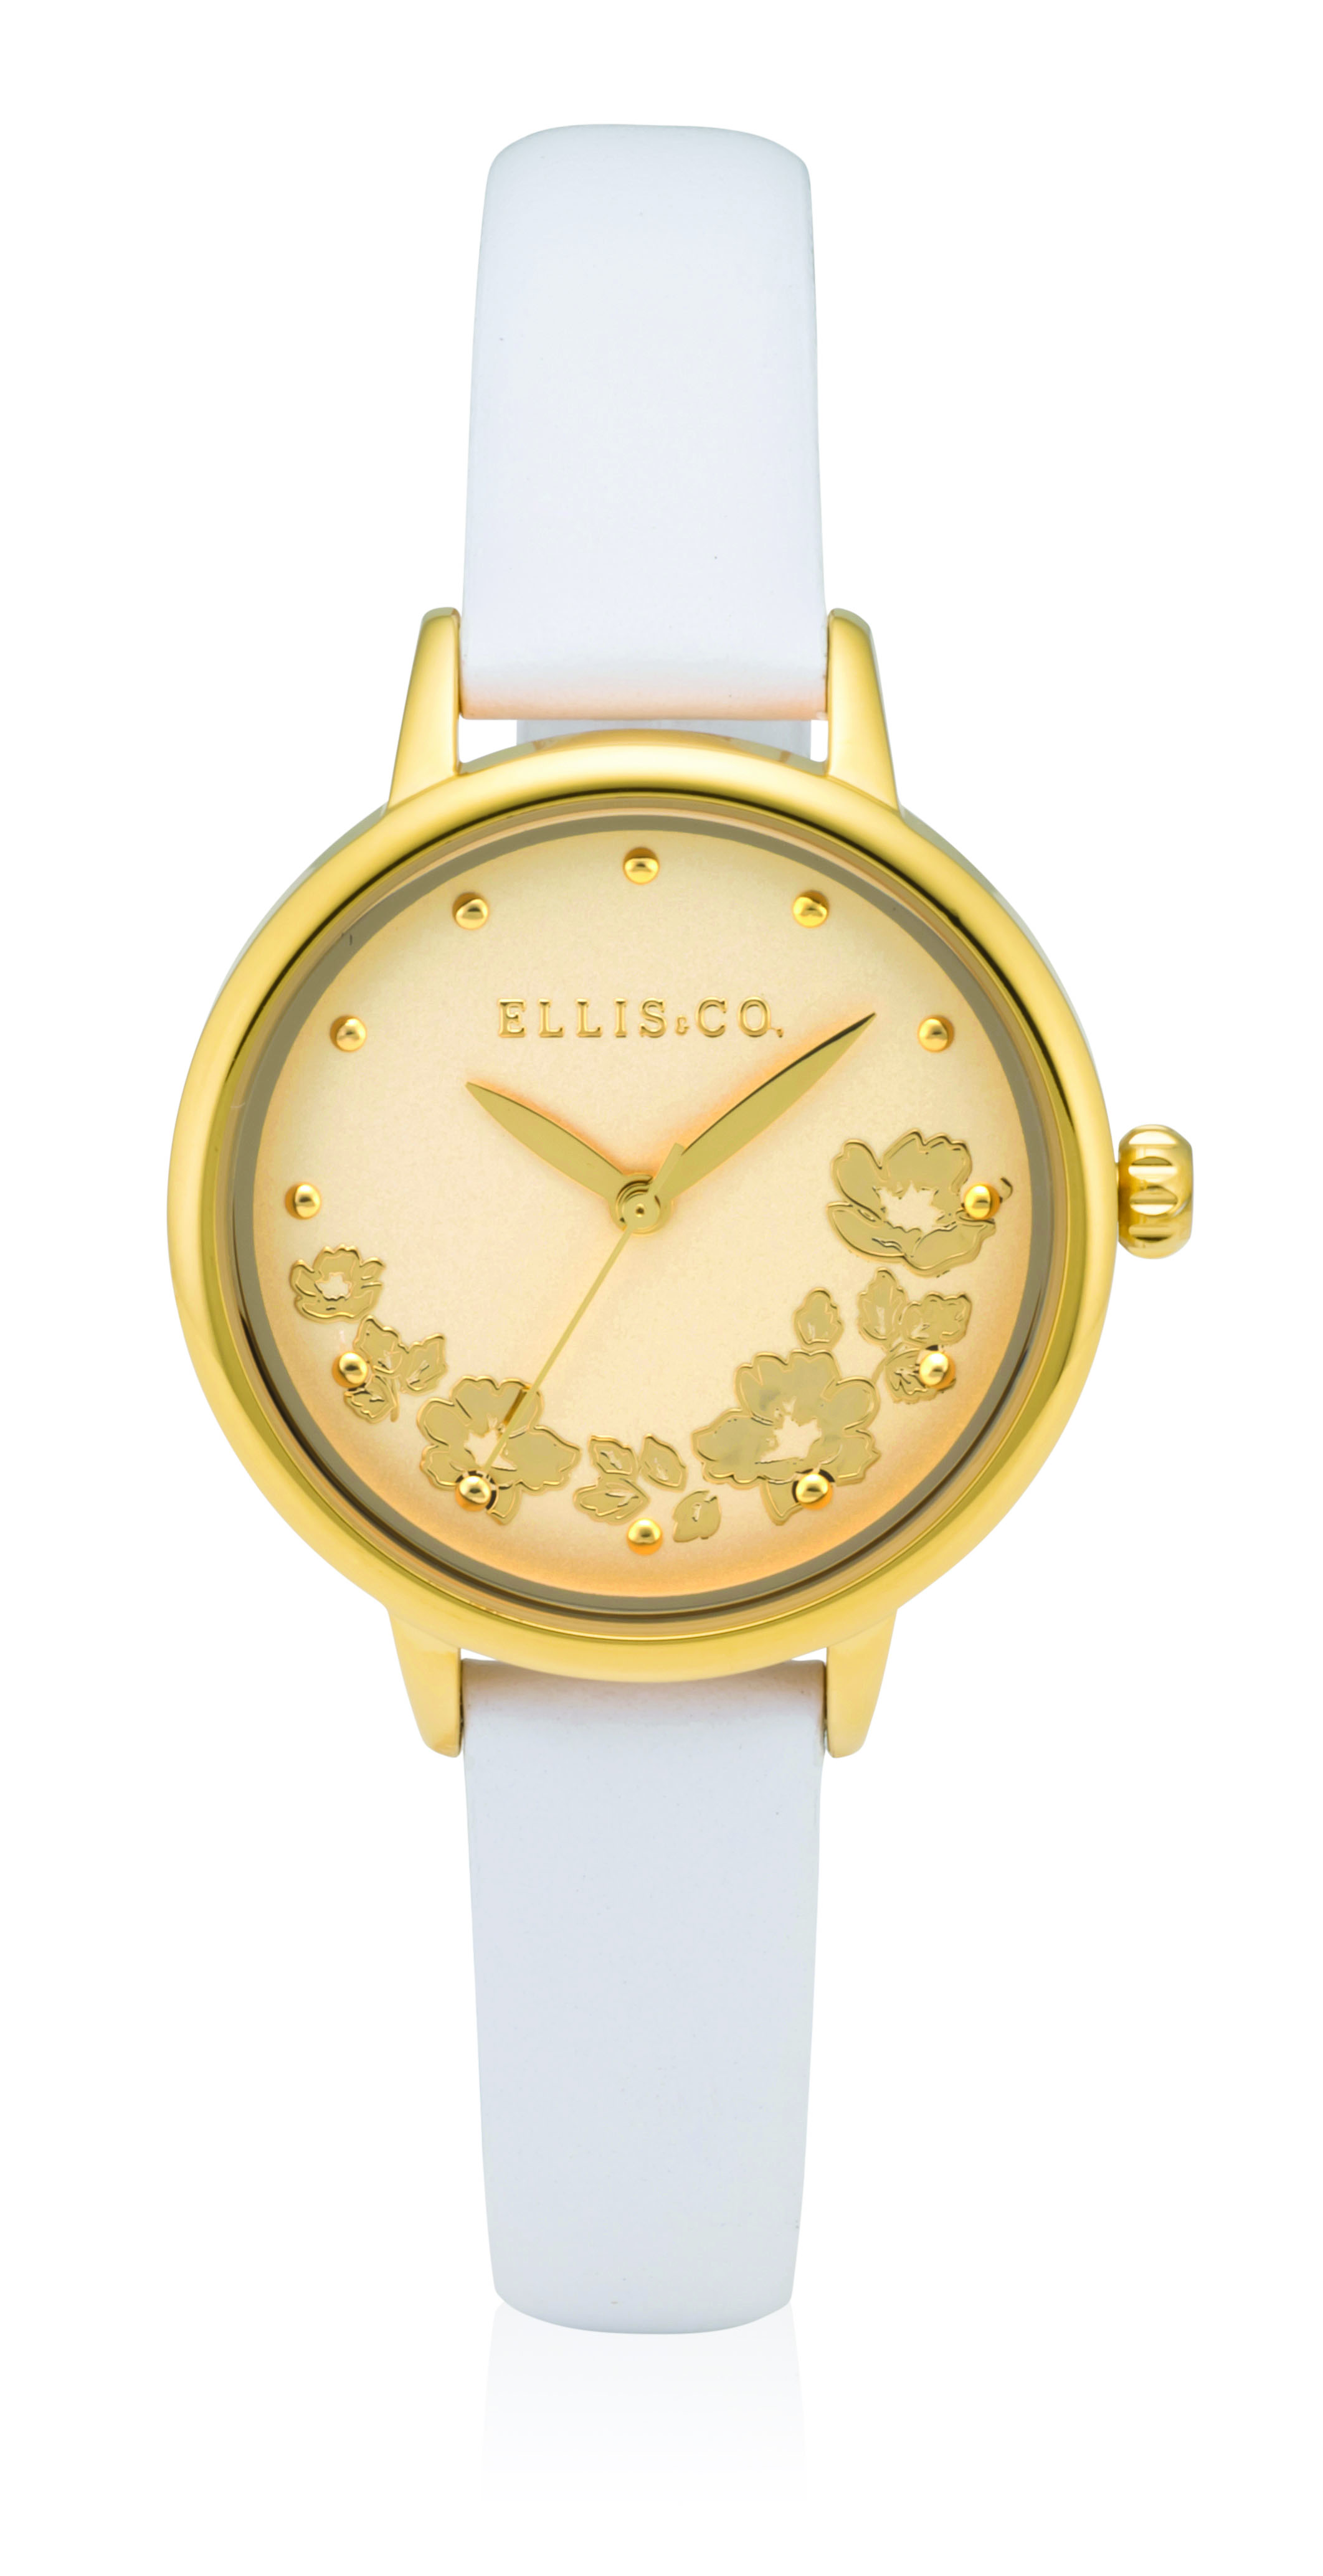 Ellis & Co White Leather Womens Watch